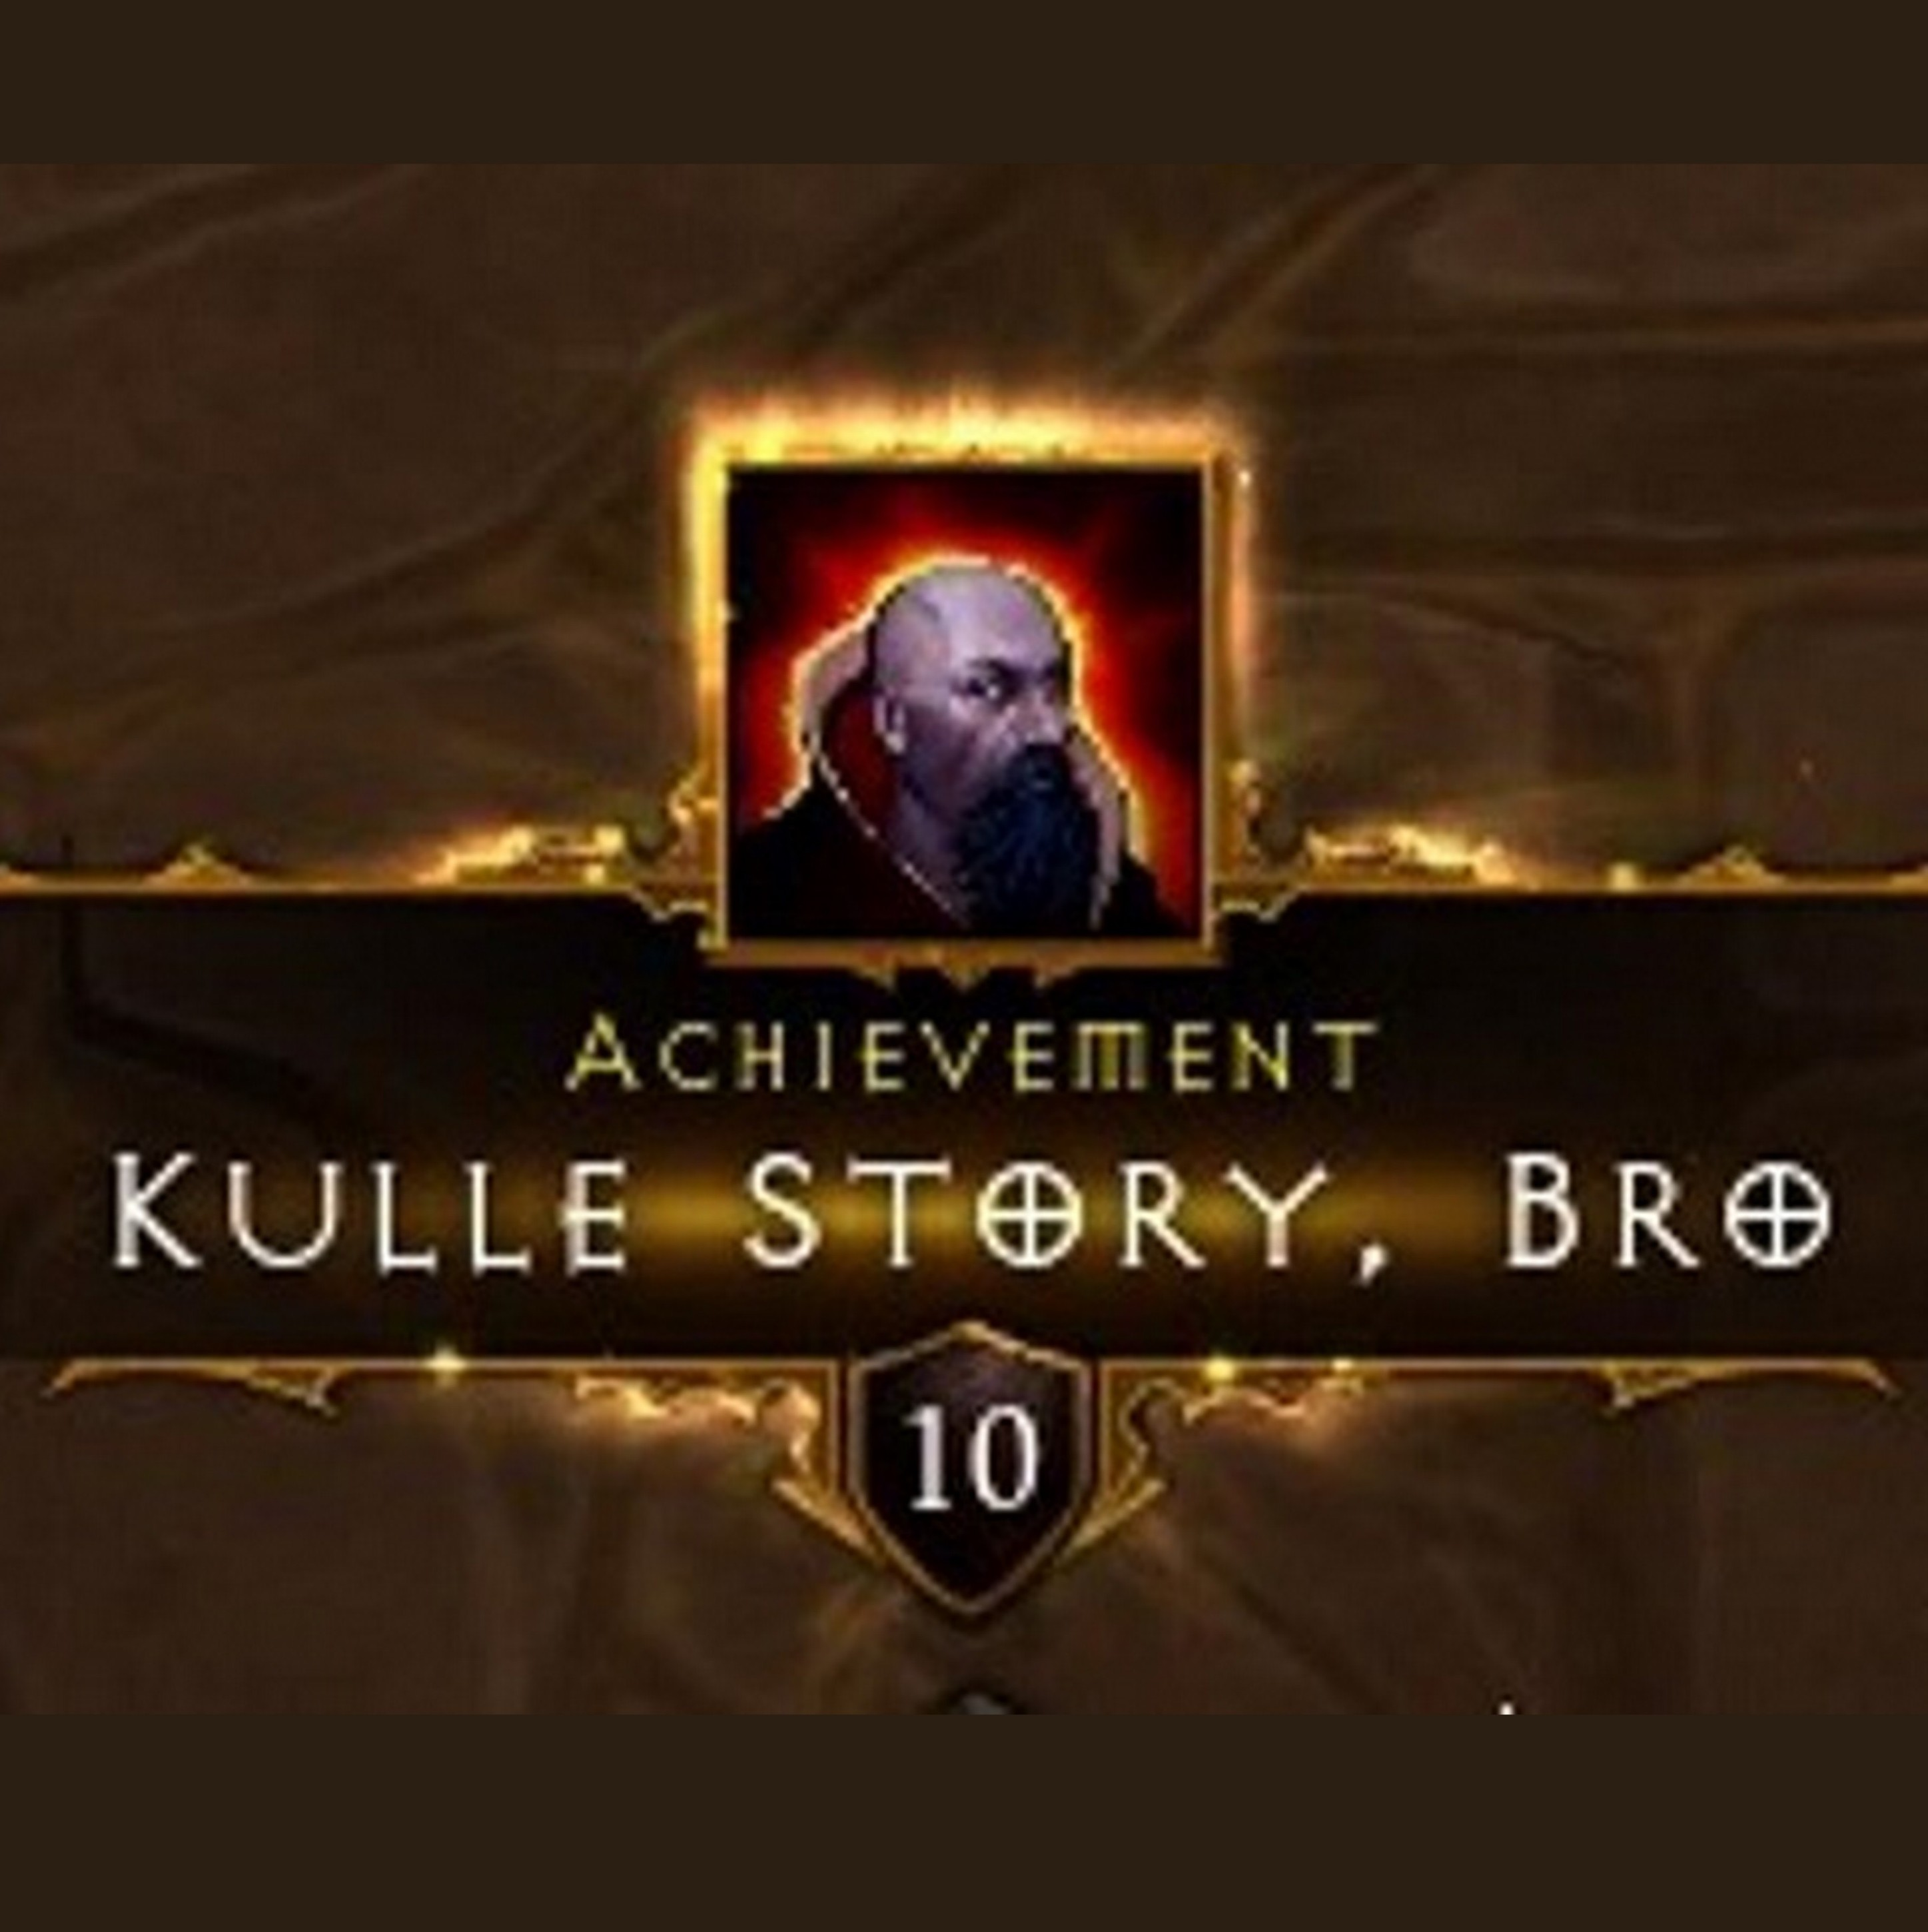 Kulle Story Bro - A Diablo 3 Podcast Episode 16